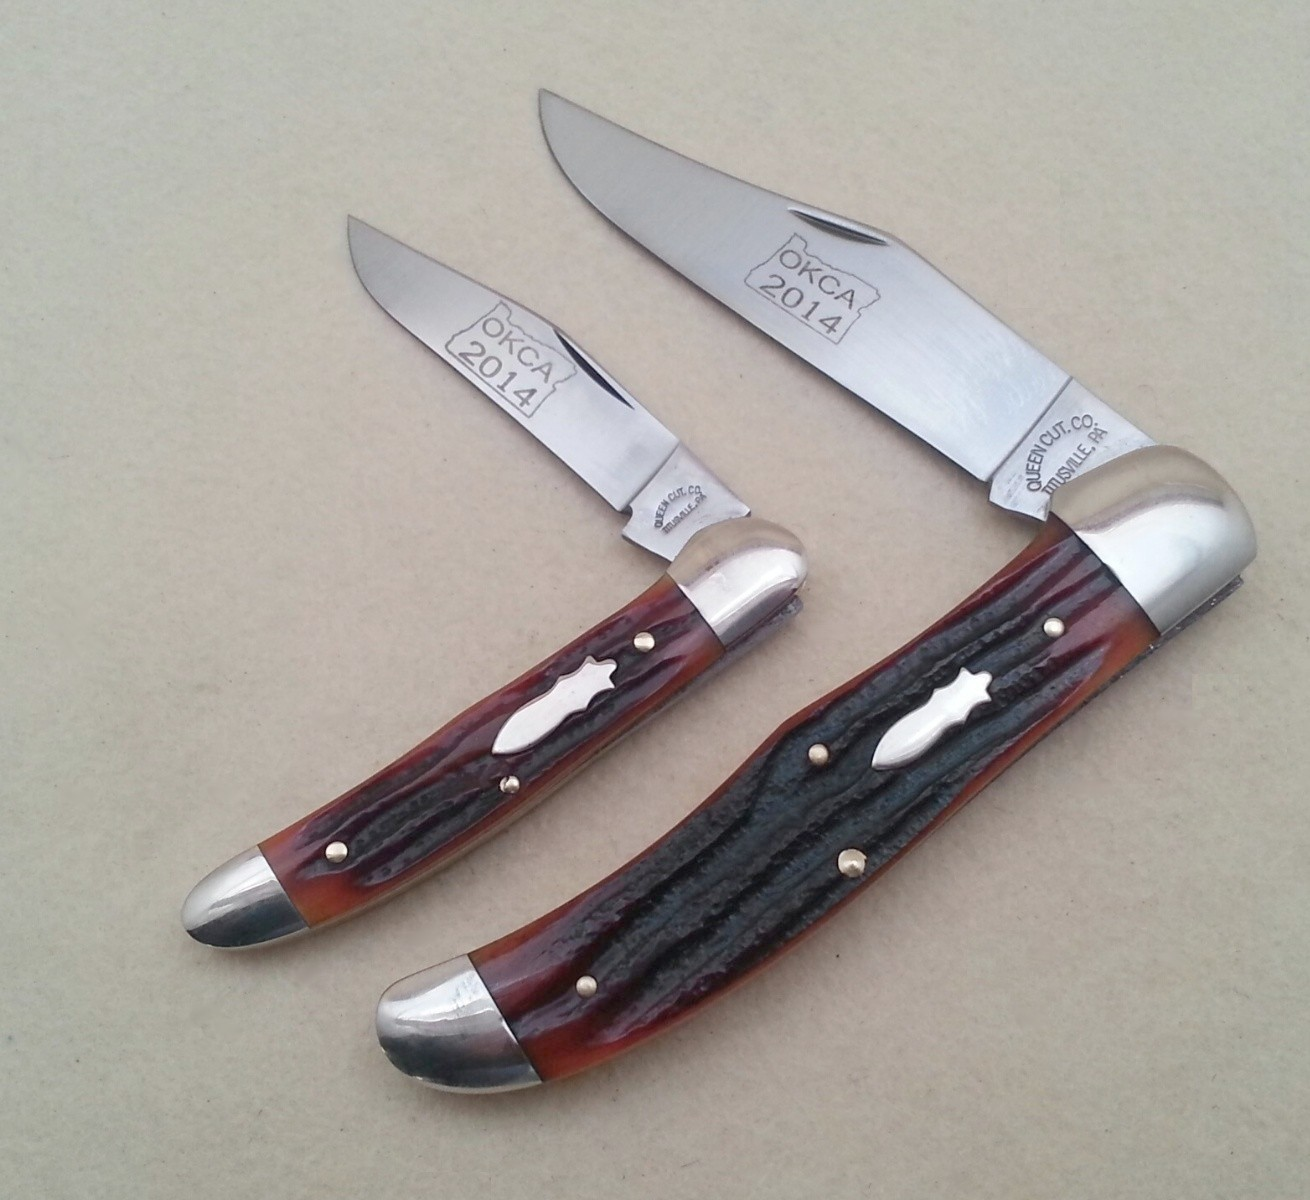 2014 Queen Club Knives